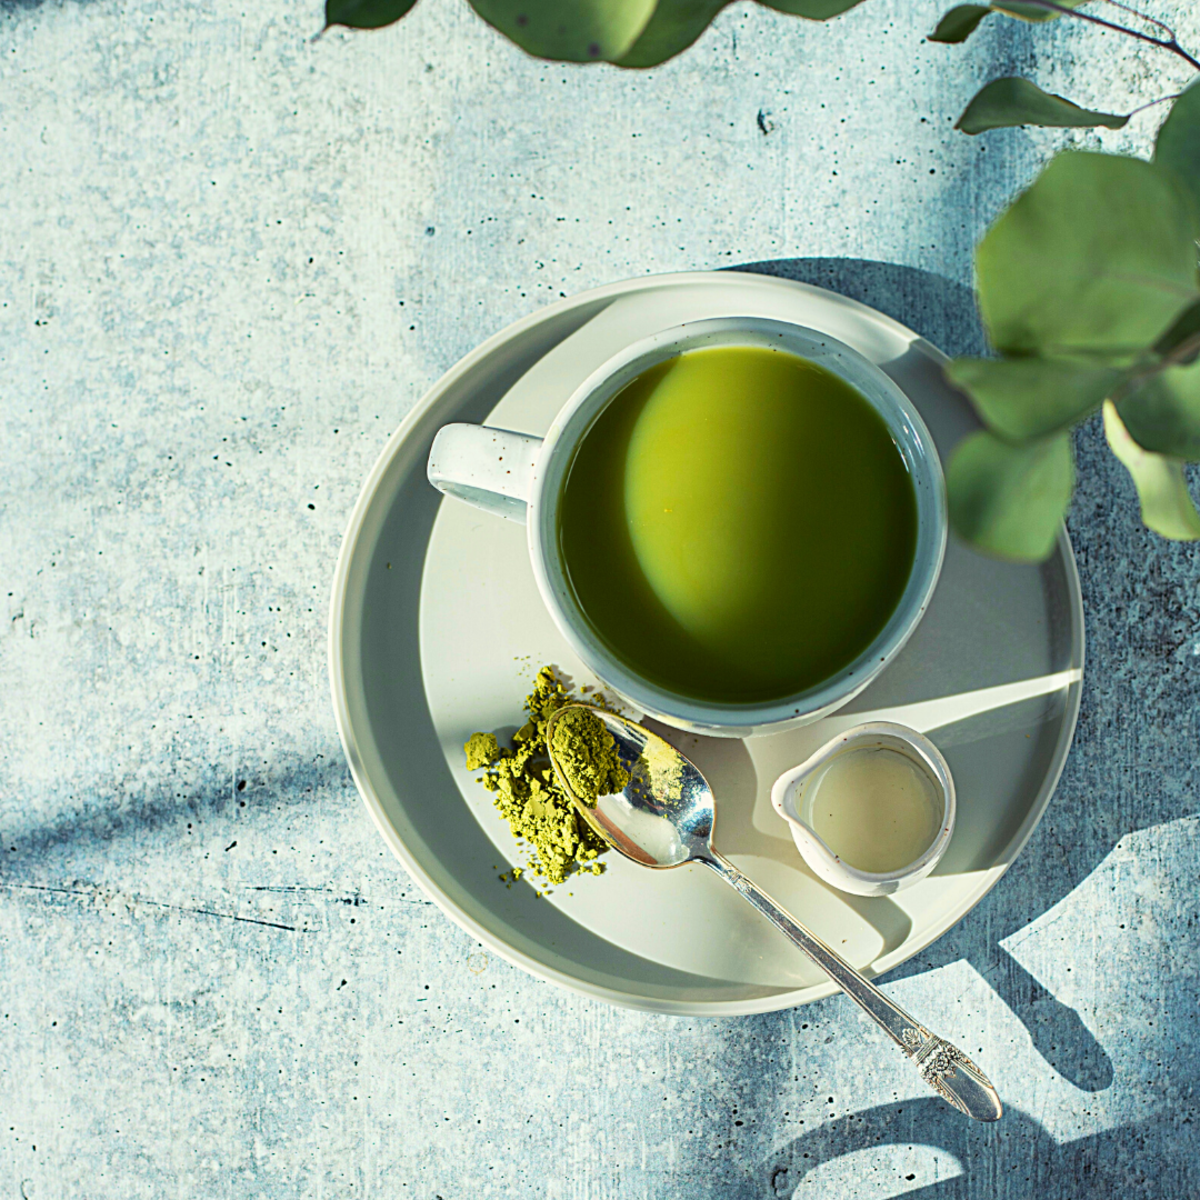 Matcha is consumed in ceremonies in Japan, due to its ability to induce an alpha-wave-based flow state.